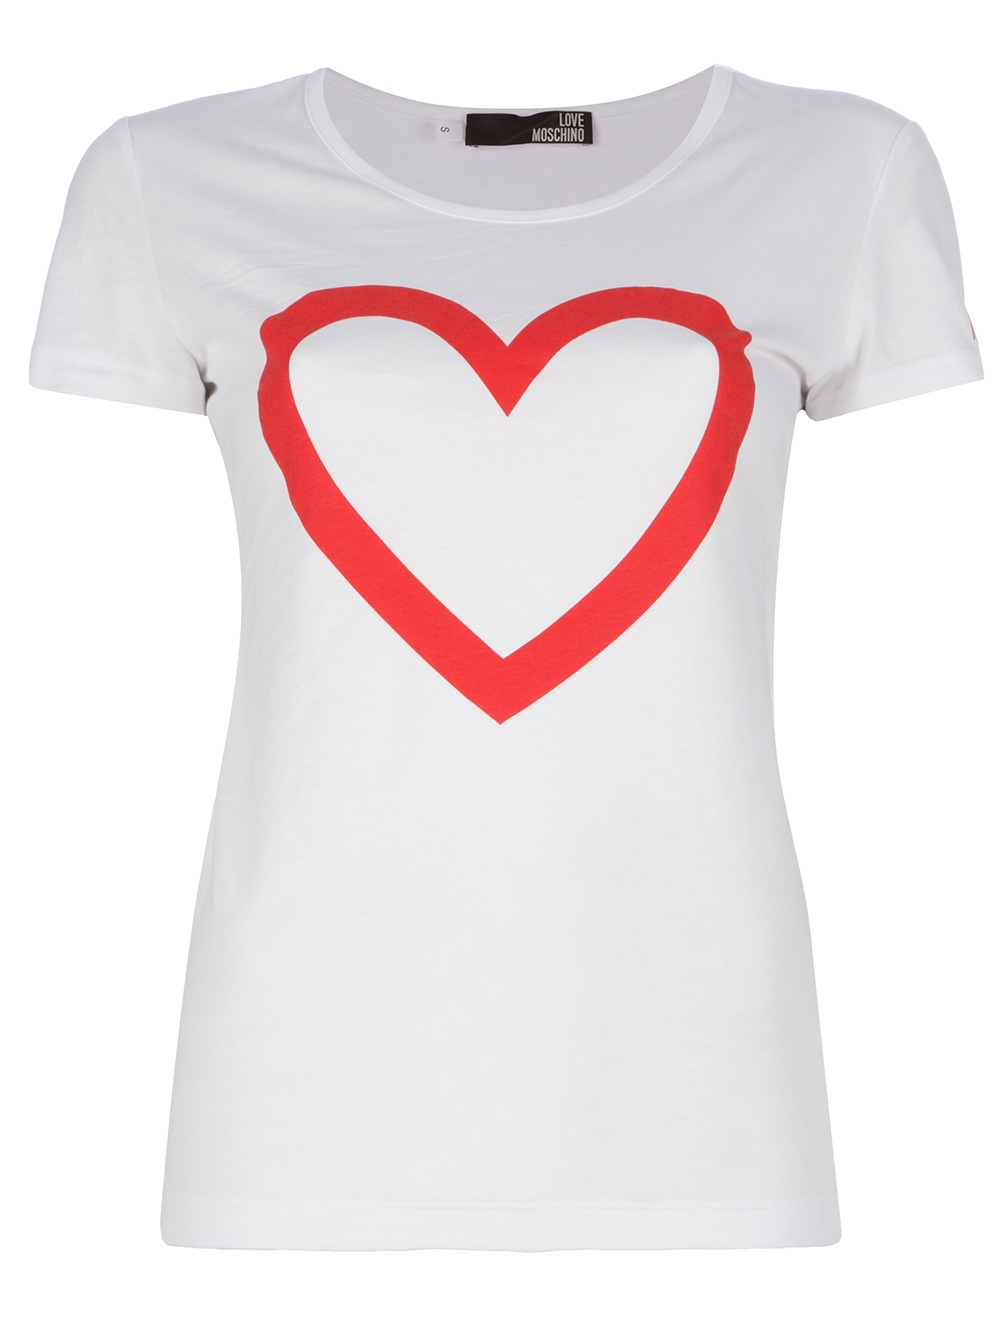 love moschino heart tshirt in white lyst. Black Bedroom Furniture Sets. Home Design Ideas